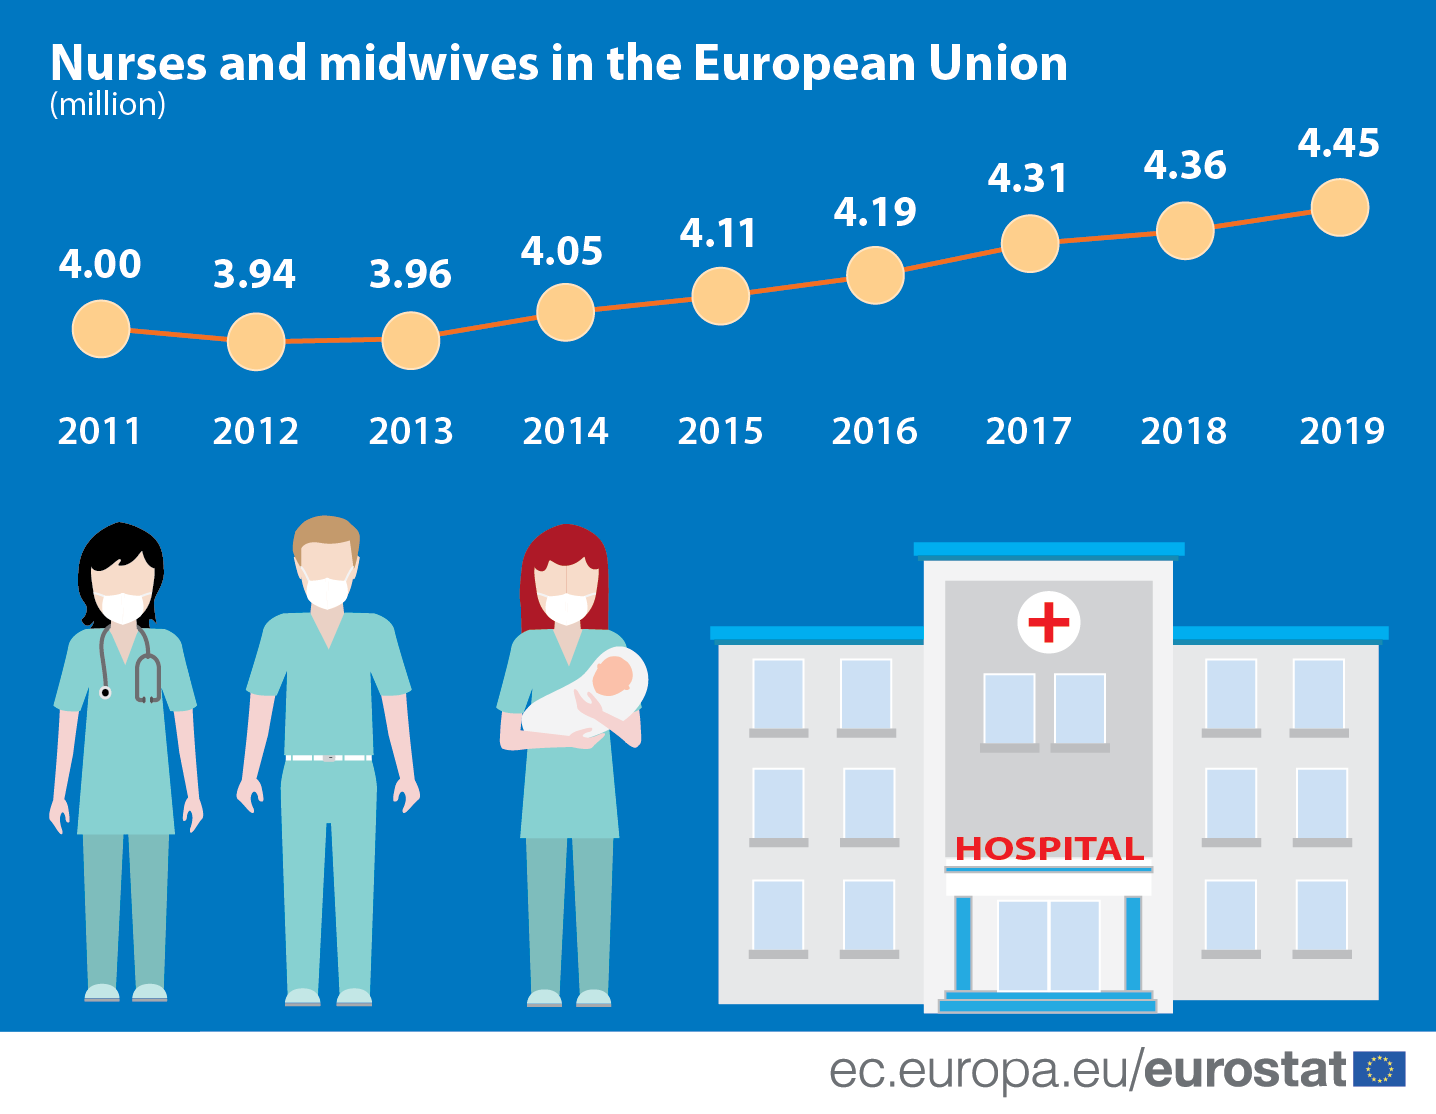 Infographic: Nurses and midwives in the European Union, 2011-2019 (million)